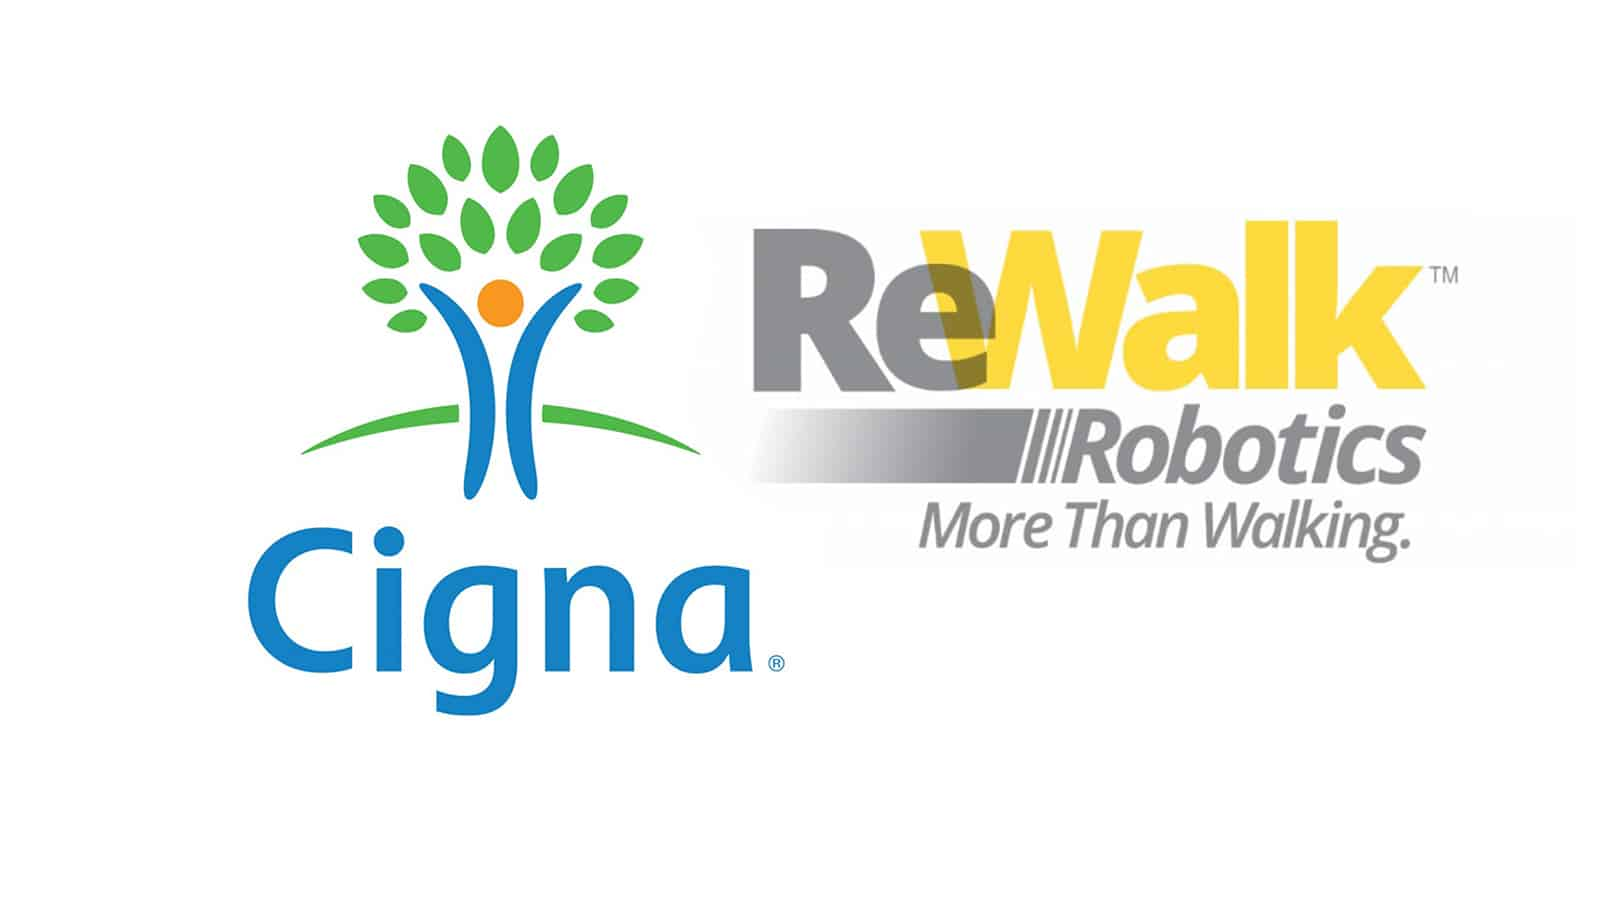 ReWalk Robotics Executes 1 to 25 Reverse Stock Split